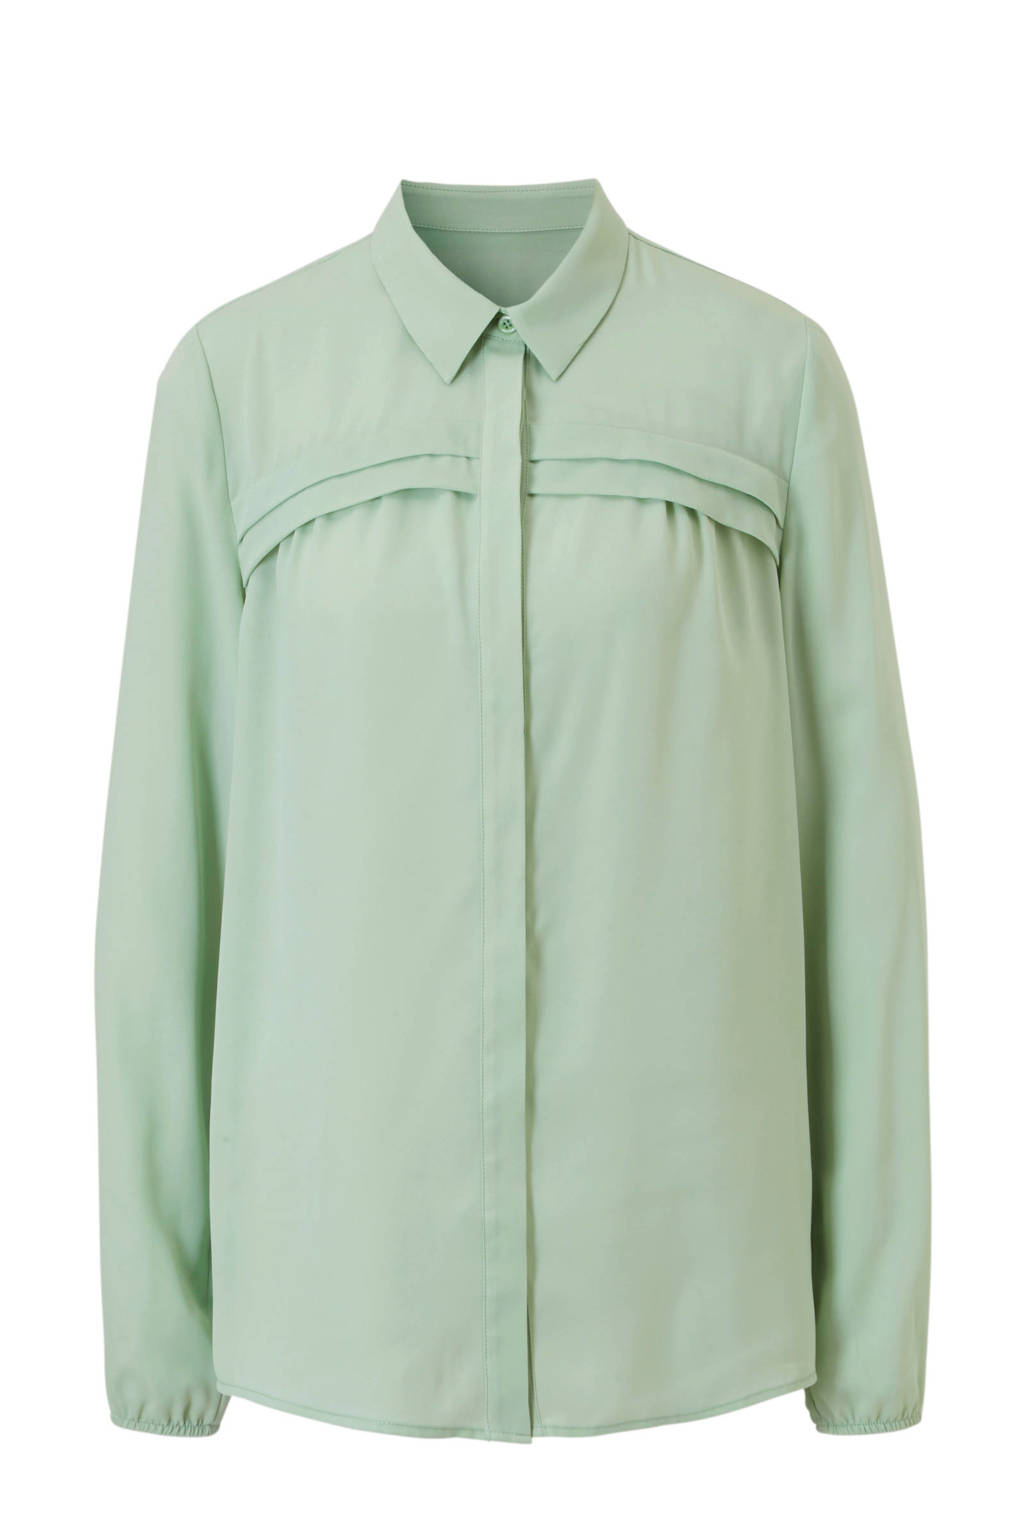 whkmp's own gerecycled polyester blouse (Waste2Wear), Lichtgroen